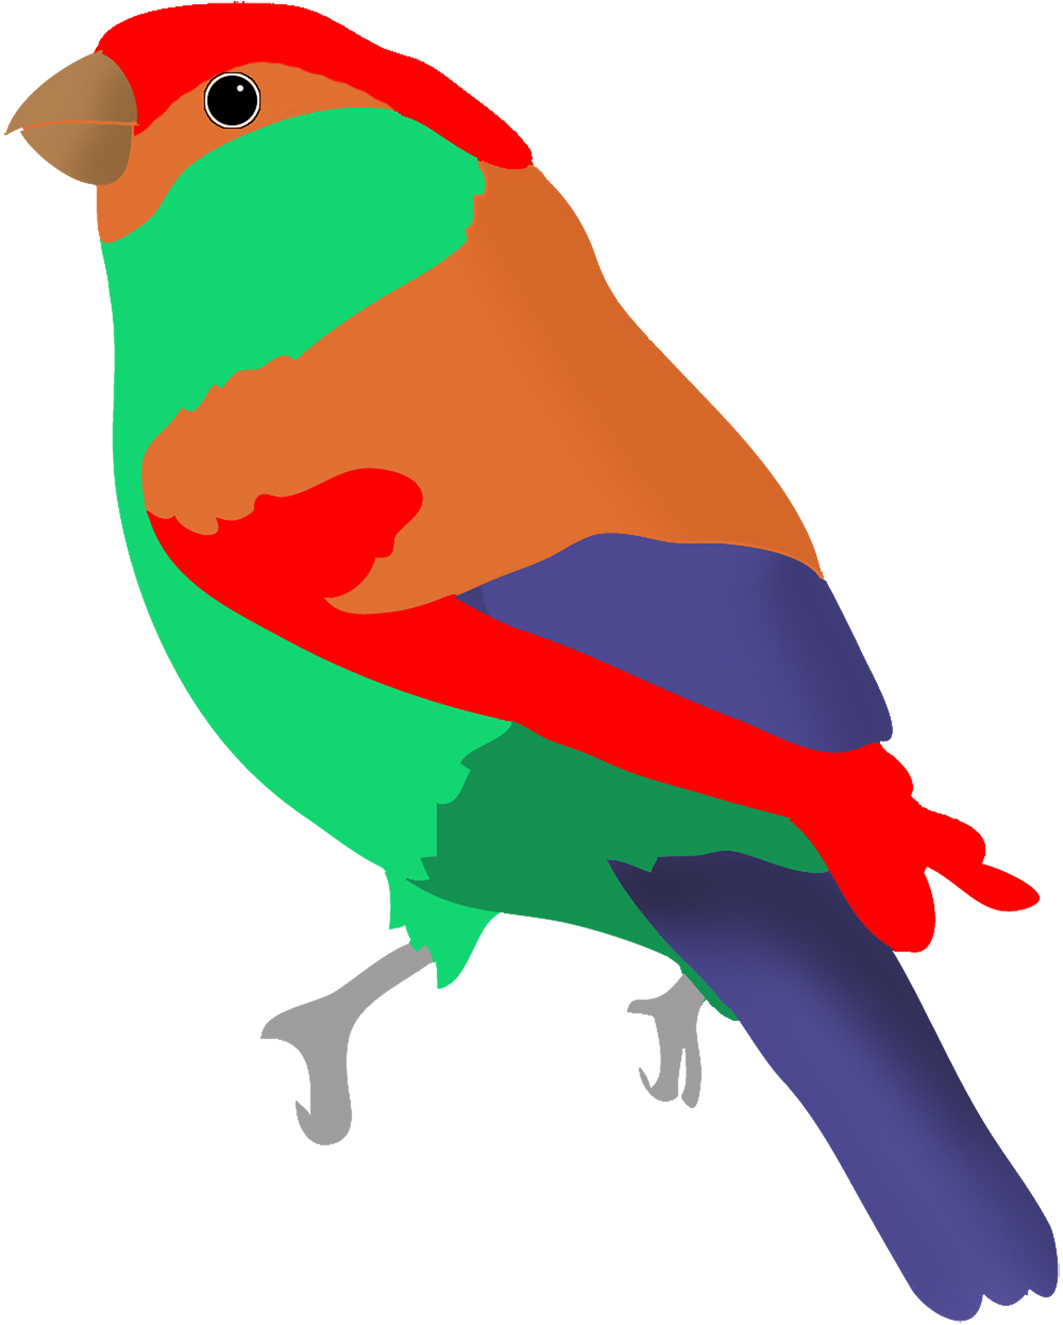 colorful-bird-red-green-blue